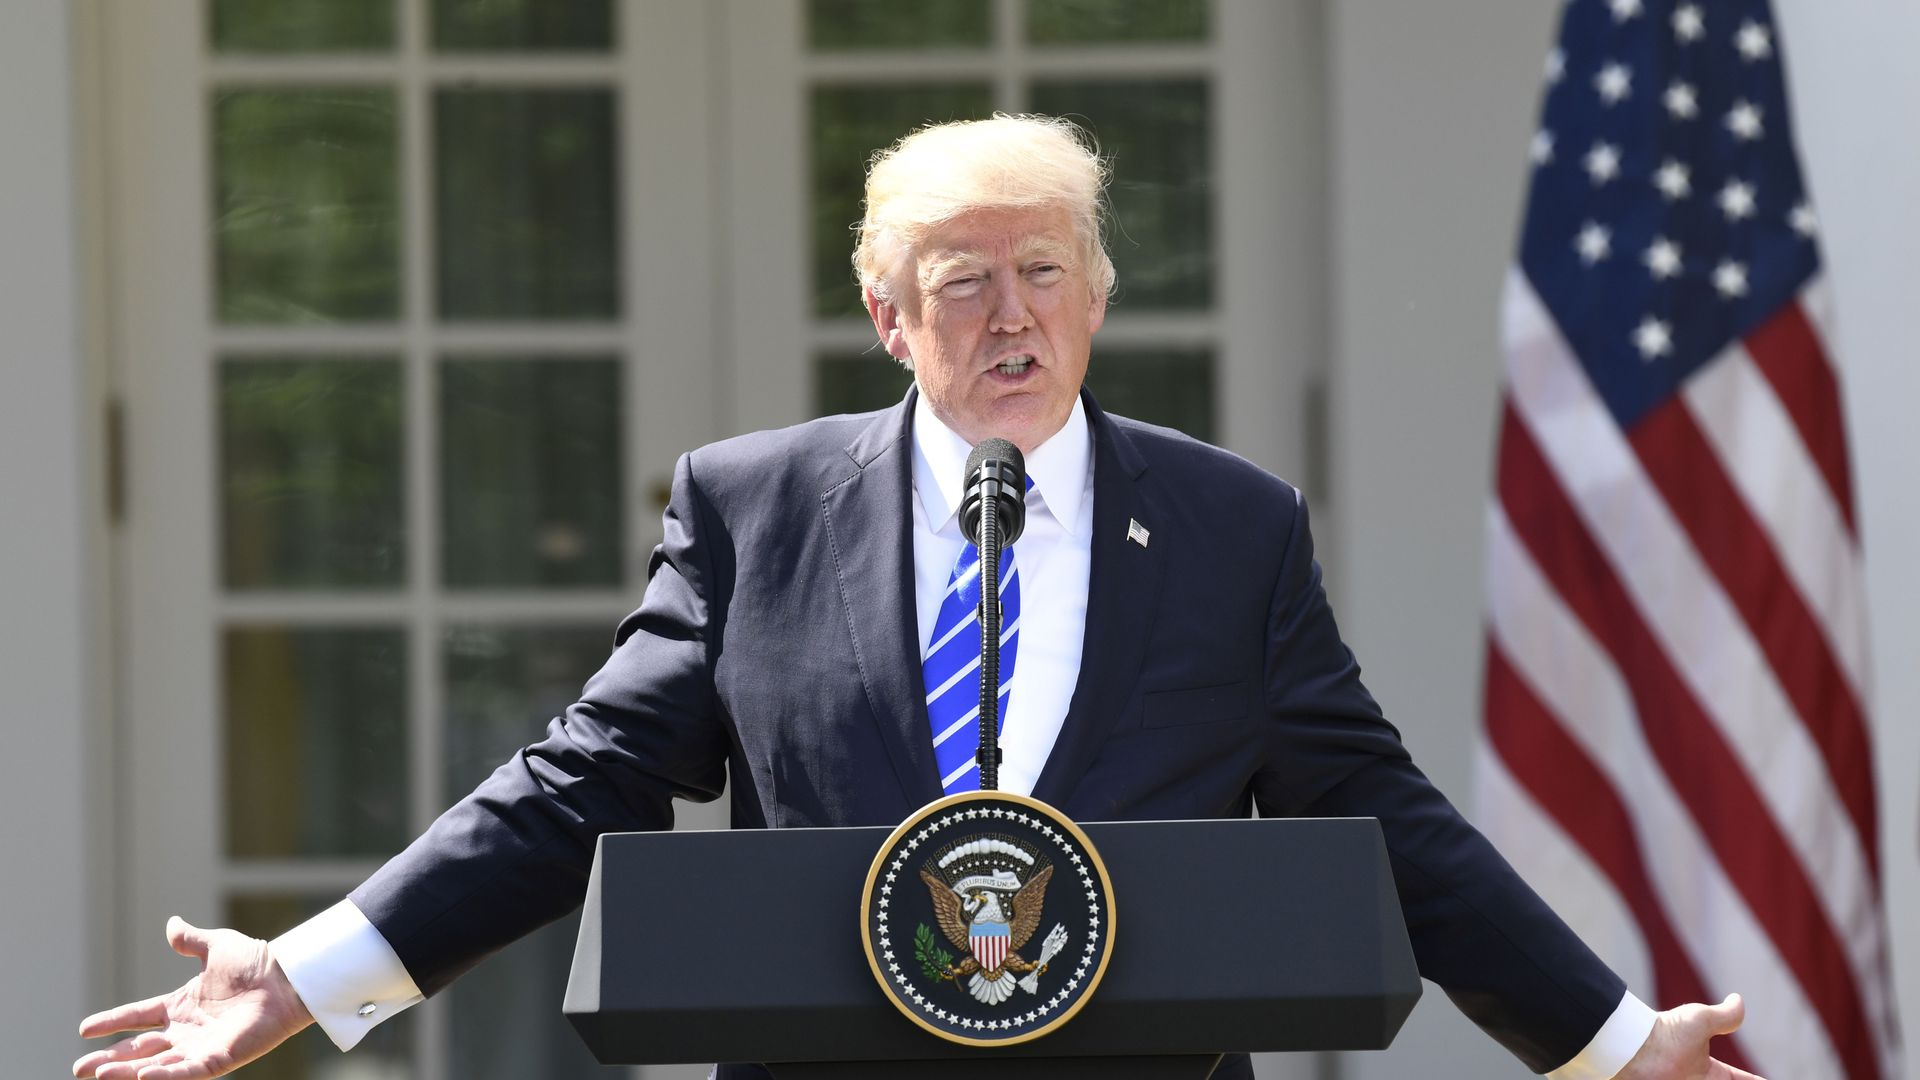 Trump speaking at a press conference